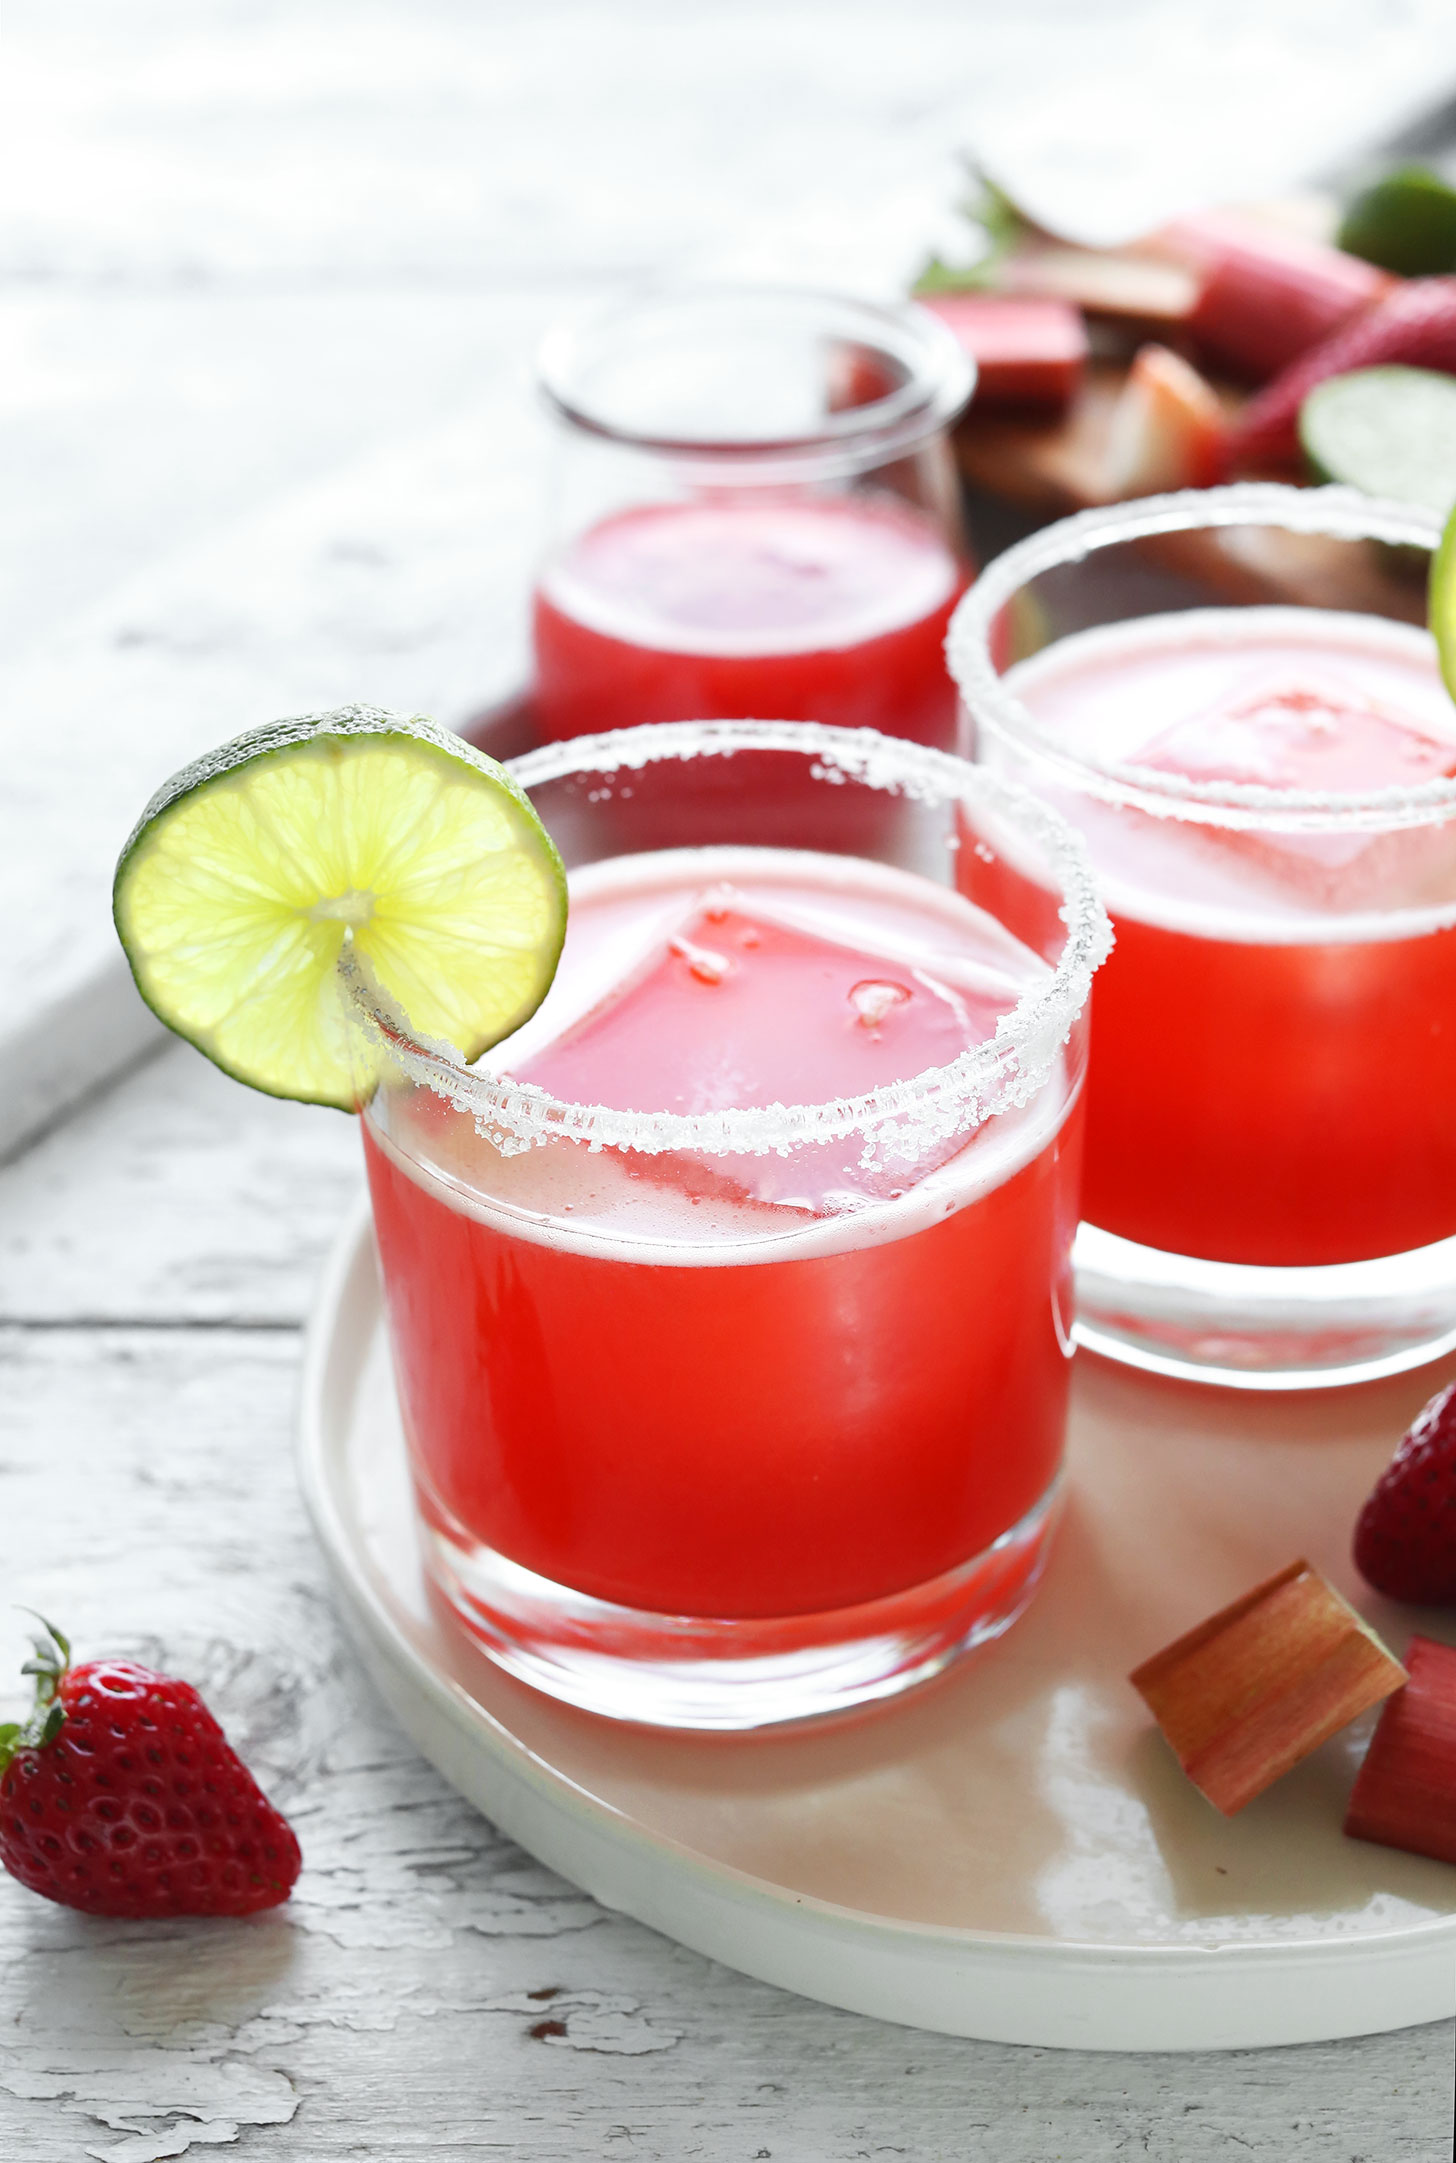 Glasses of our Strawberry Rhubarb Margarita recipe for a refreshing spring drink